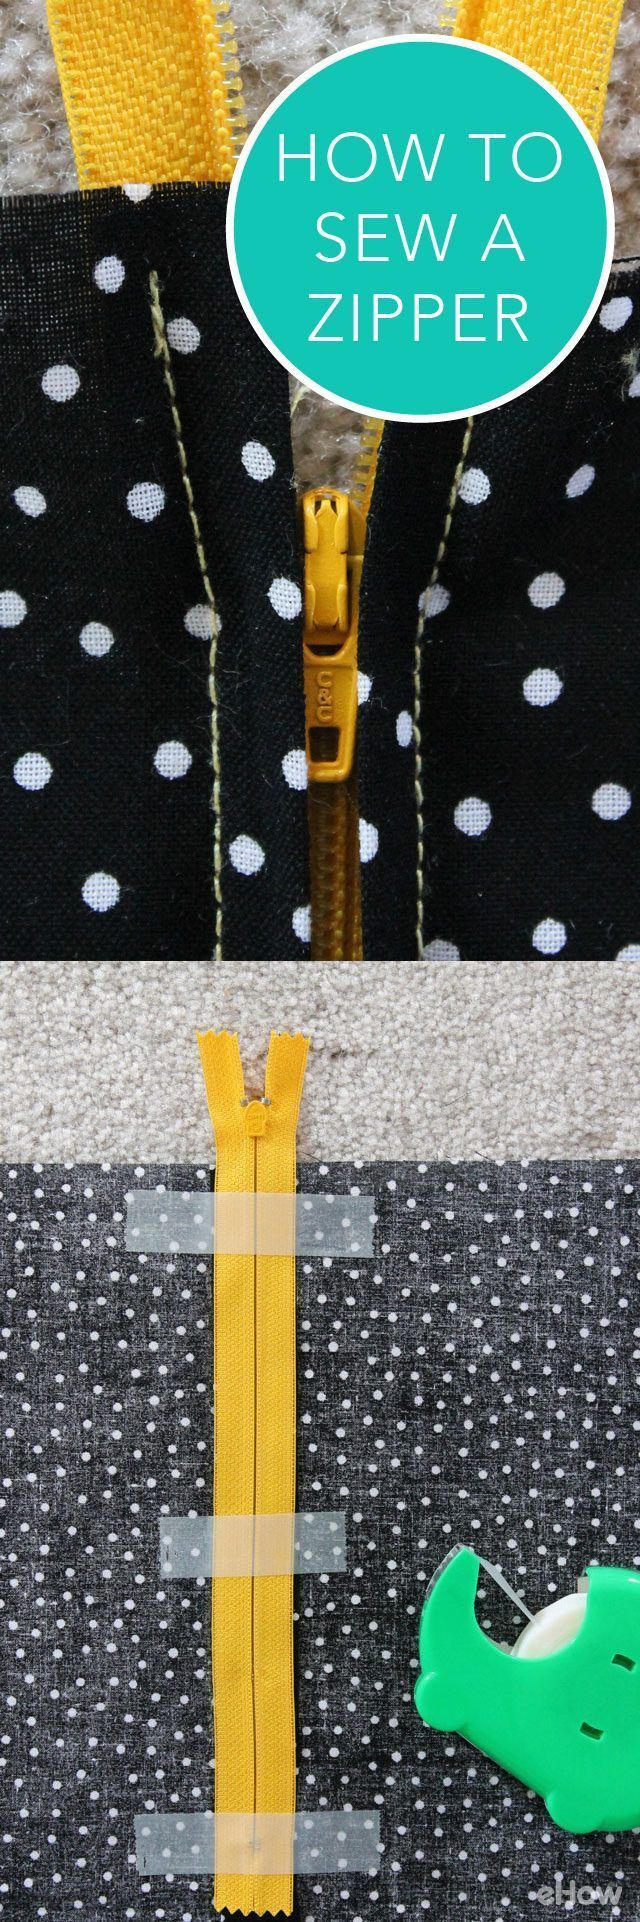 Learning how to sew on a zipper may sound difficult, but with this step-by-step tutorial, you'll learn to easily apply zippers to any garment piece! www.ehow.com/...